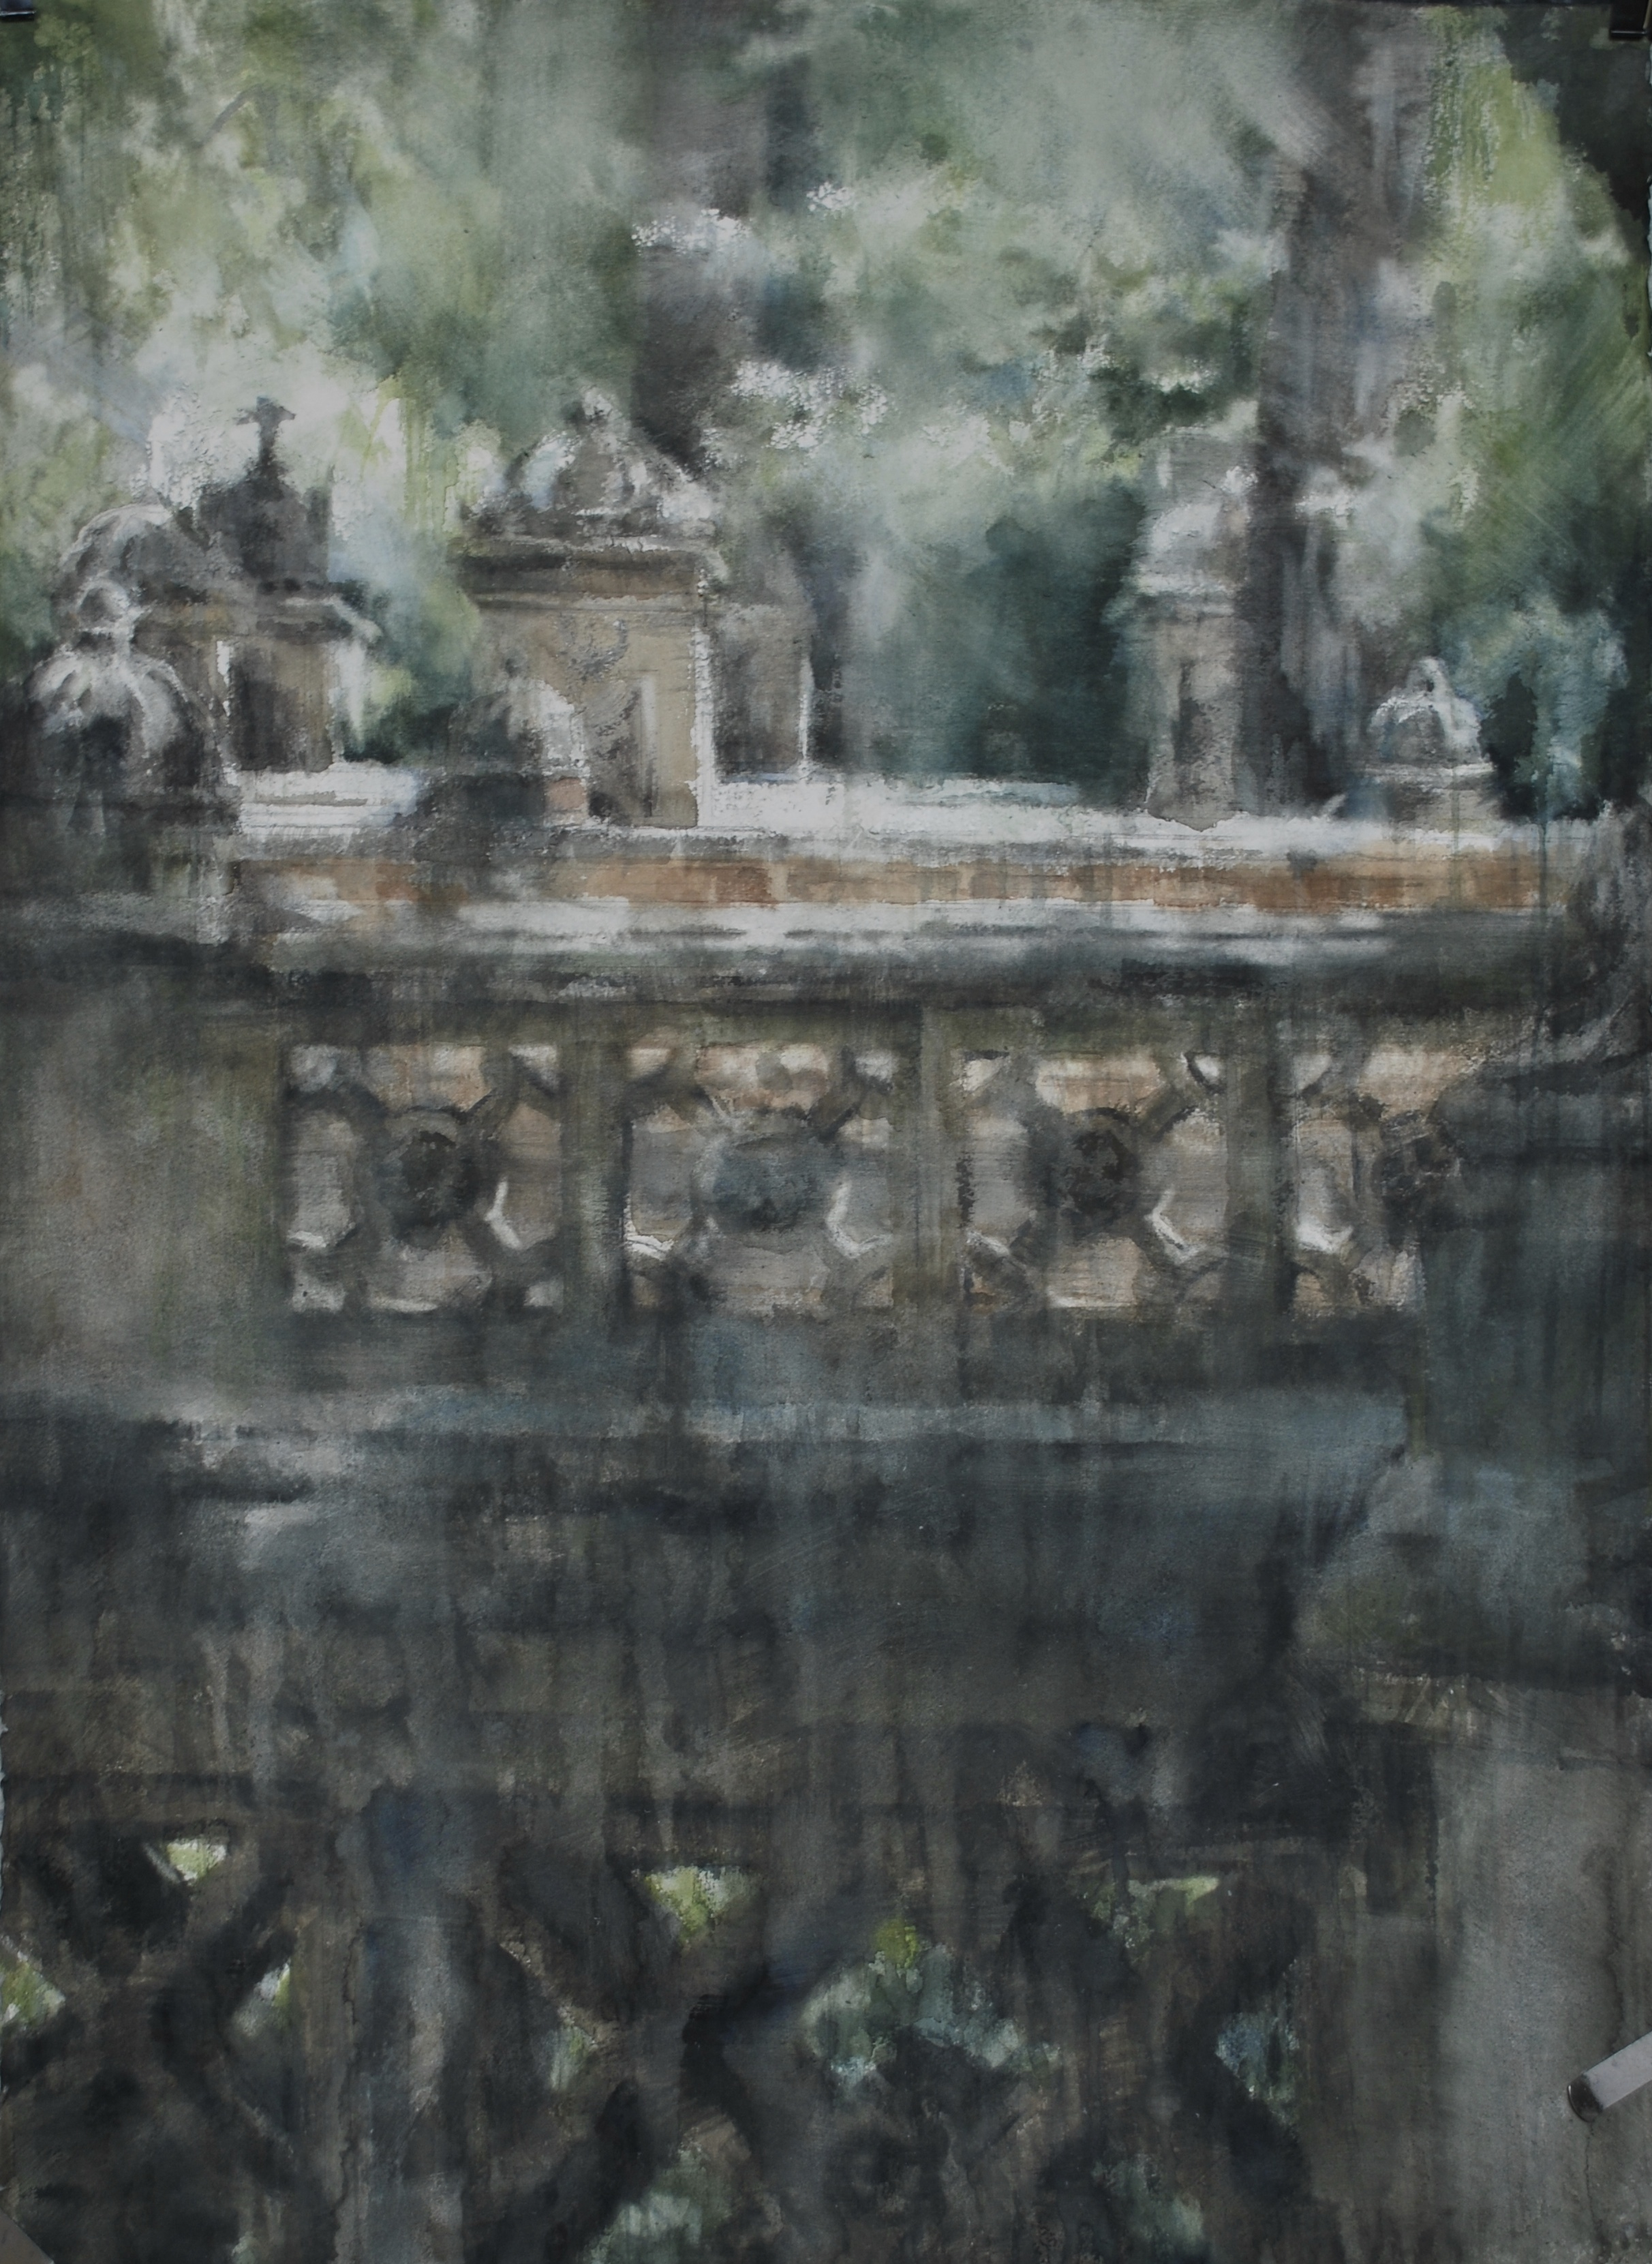 Bethesda Terrace, NYC, 25x40 inches, (Private Collection)